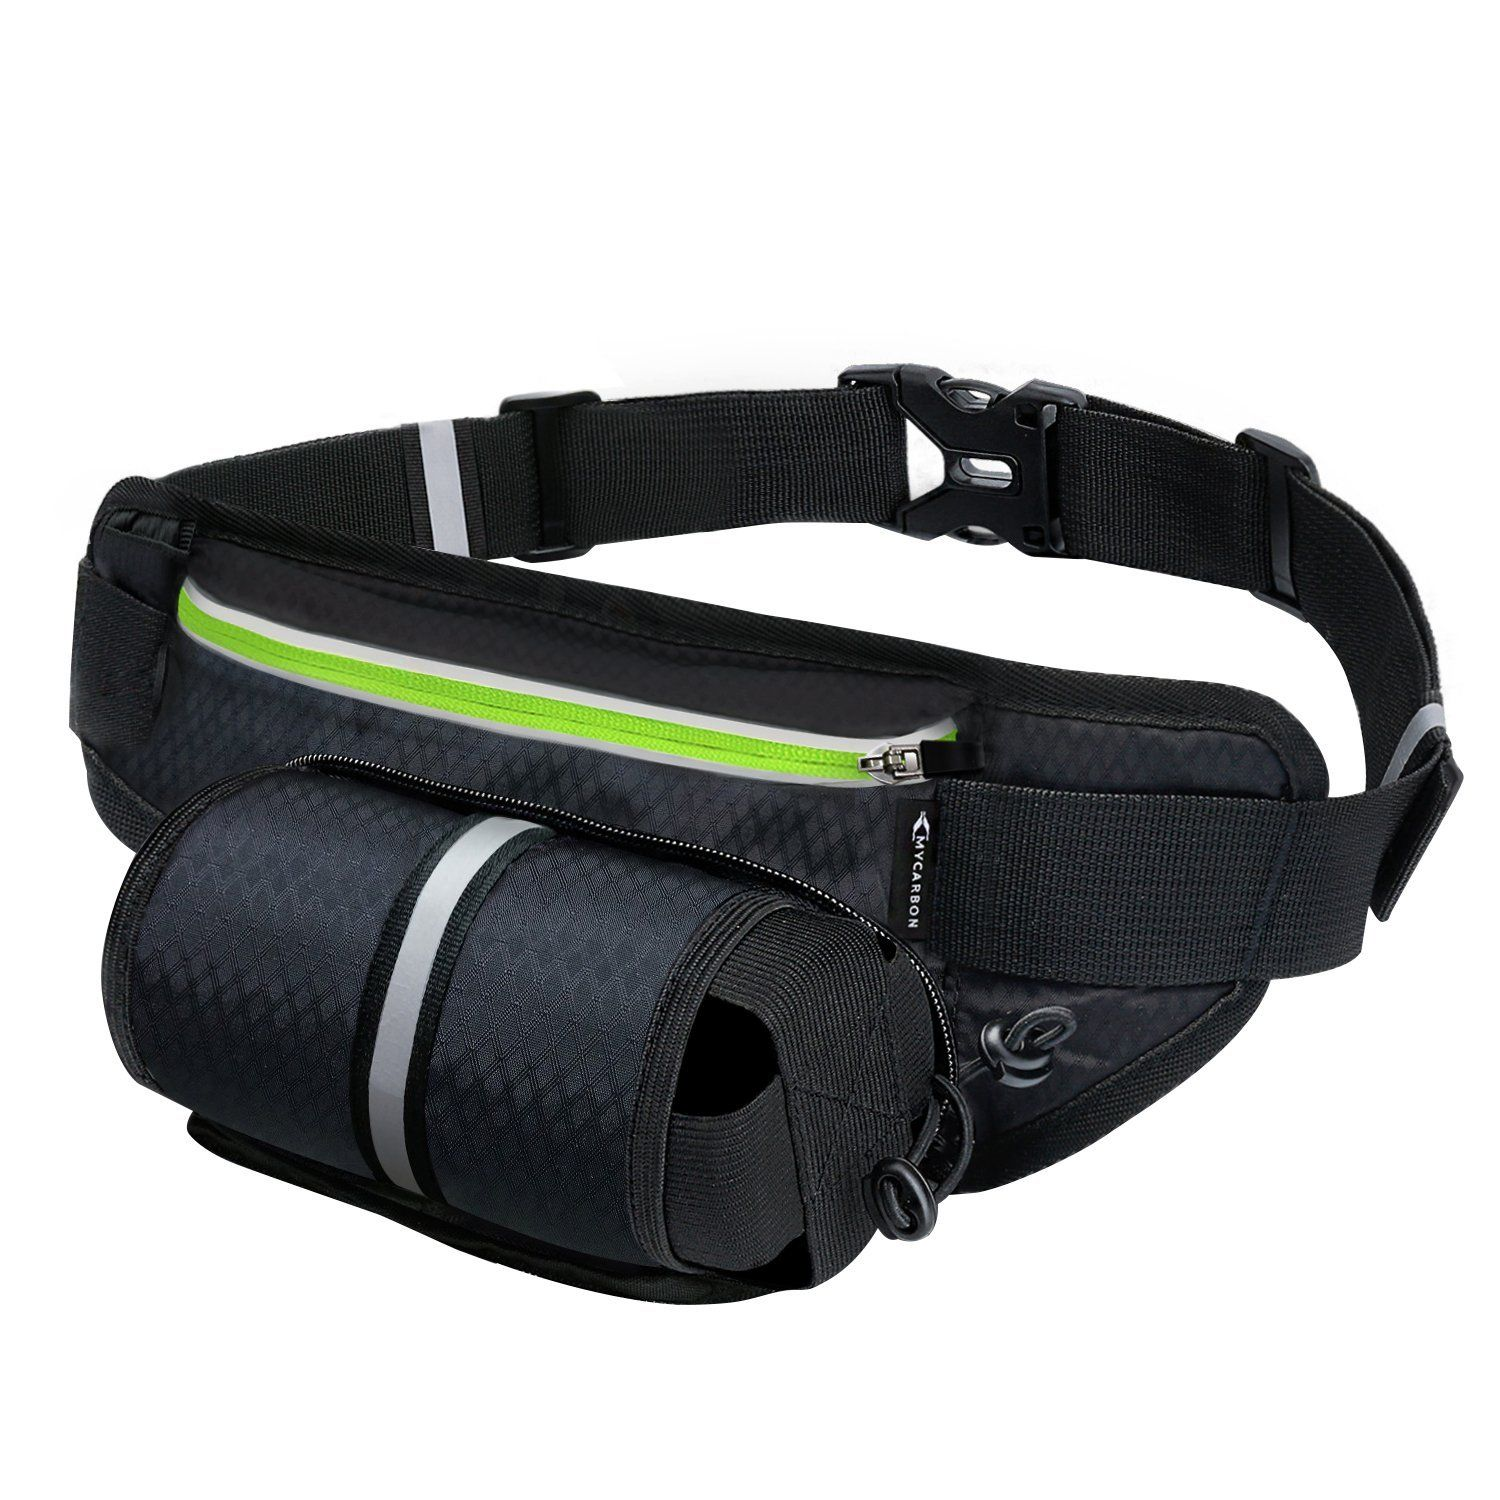 Thigh Bag Black Daiwa Emeraldas Tactical Cyberg A